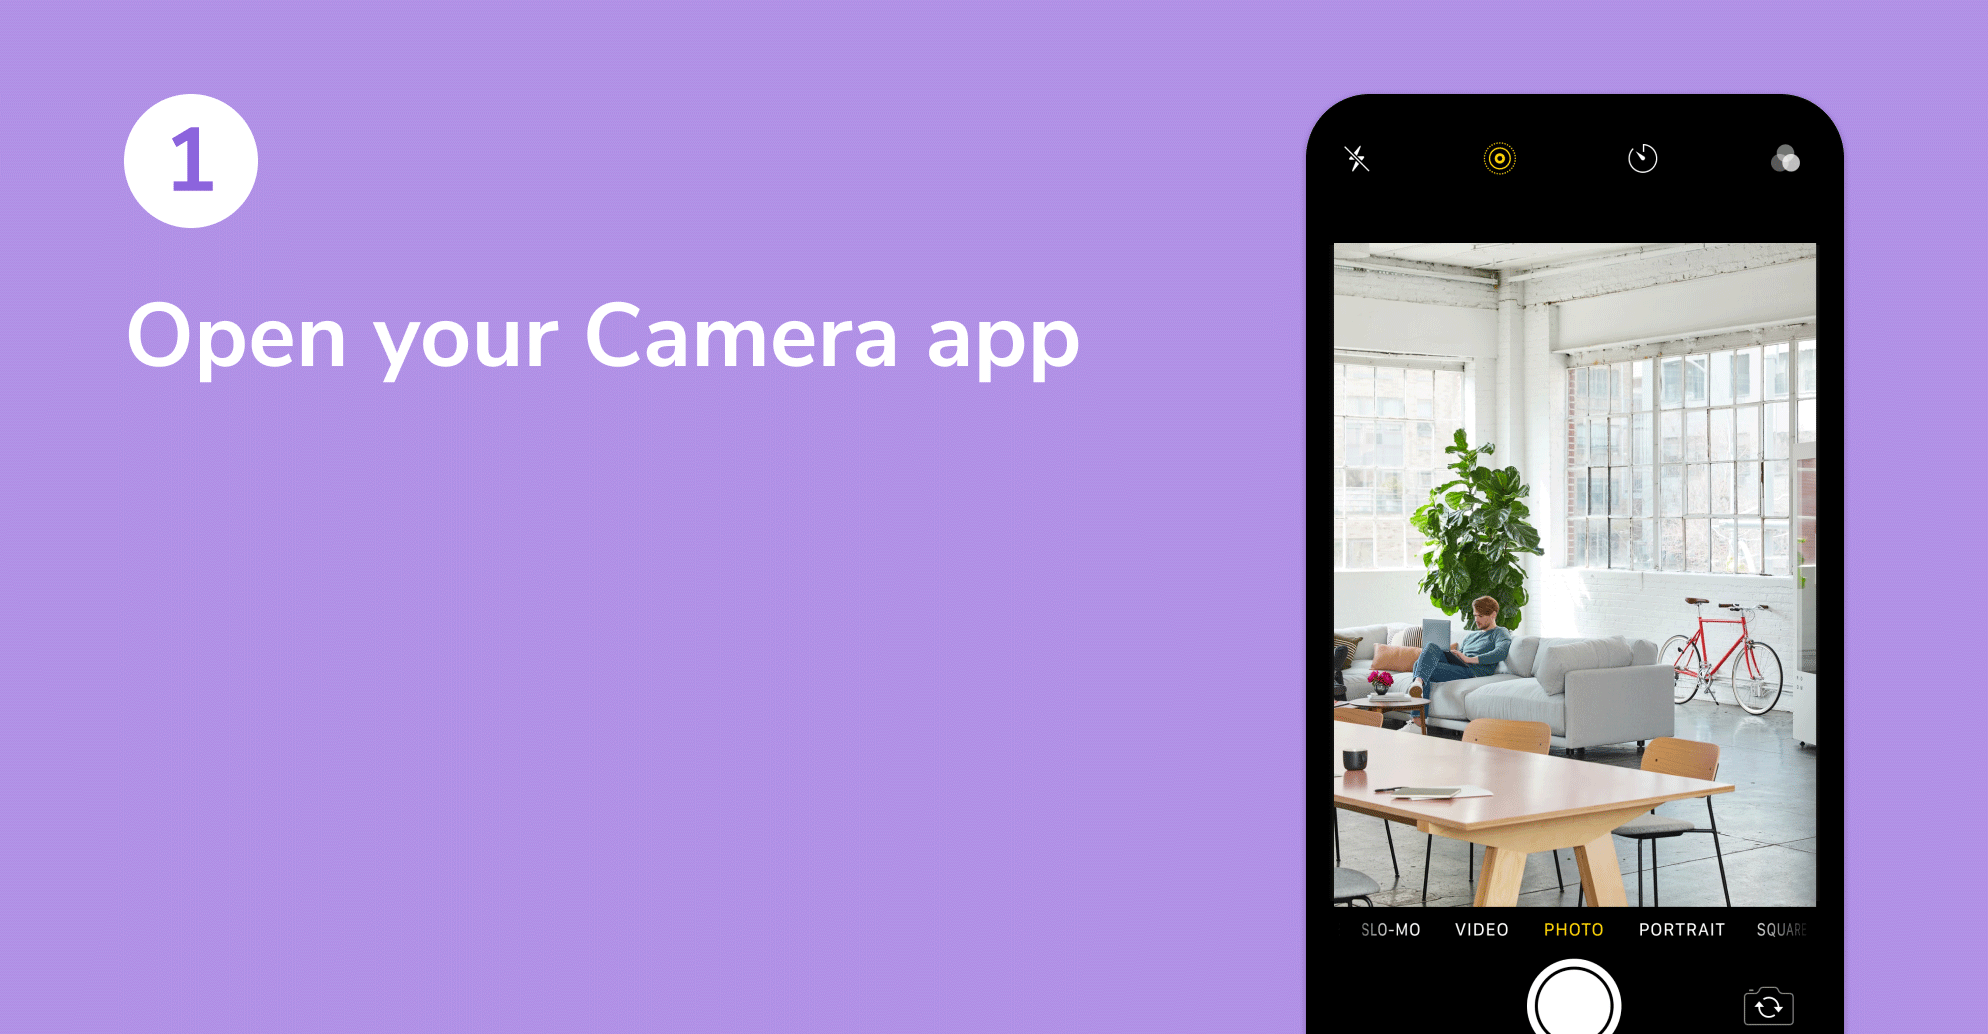 Open your Camera app